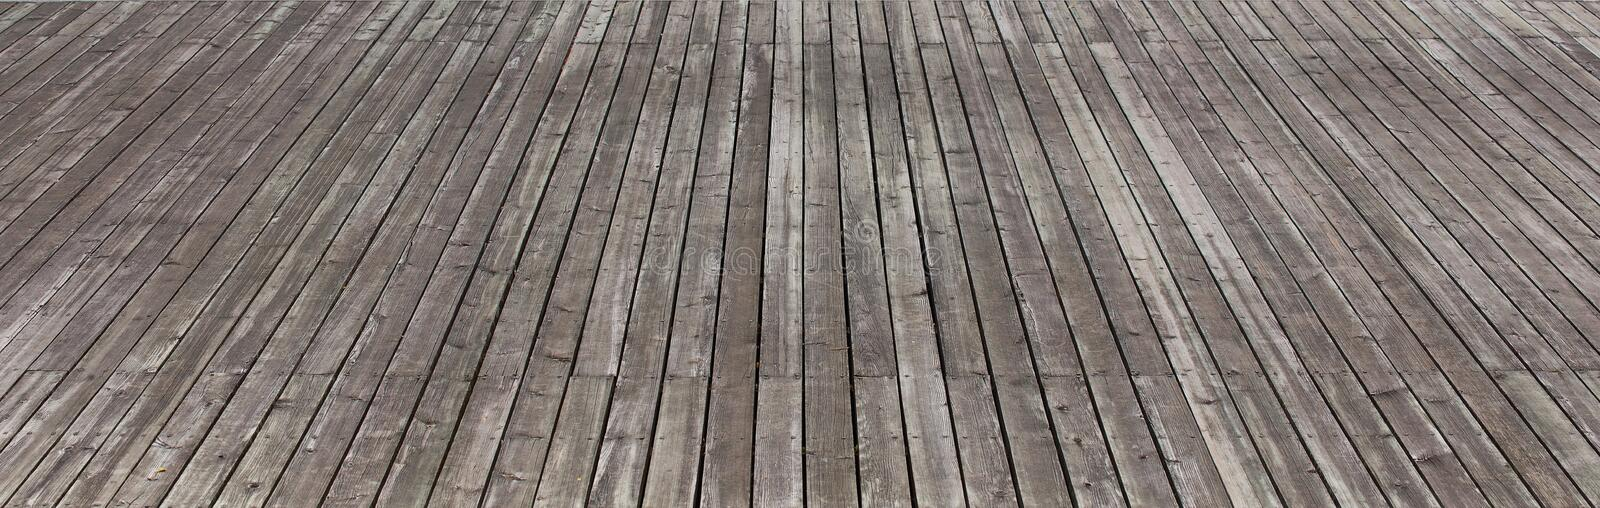 Close-up of wooden plank royalty free stock image